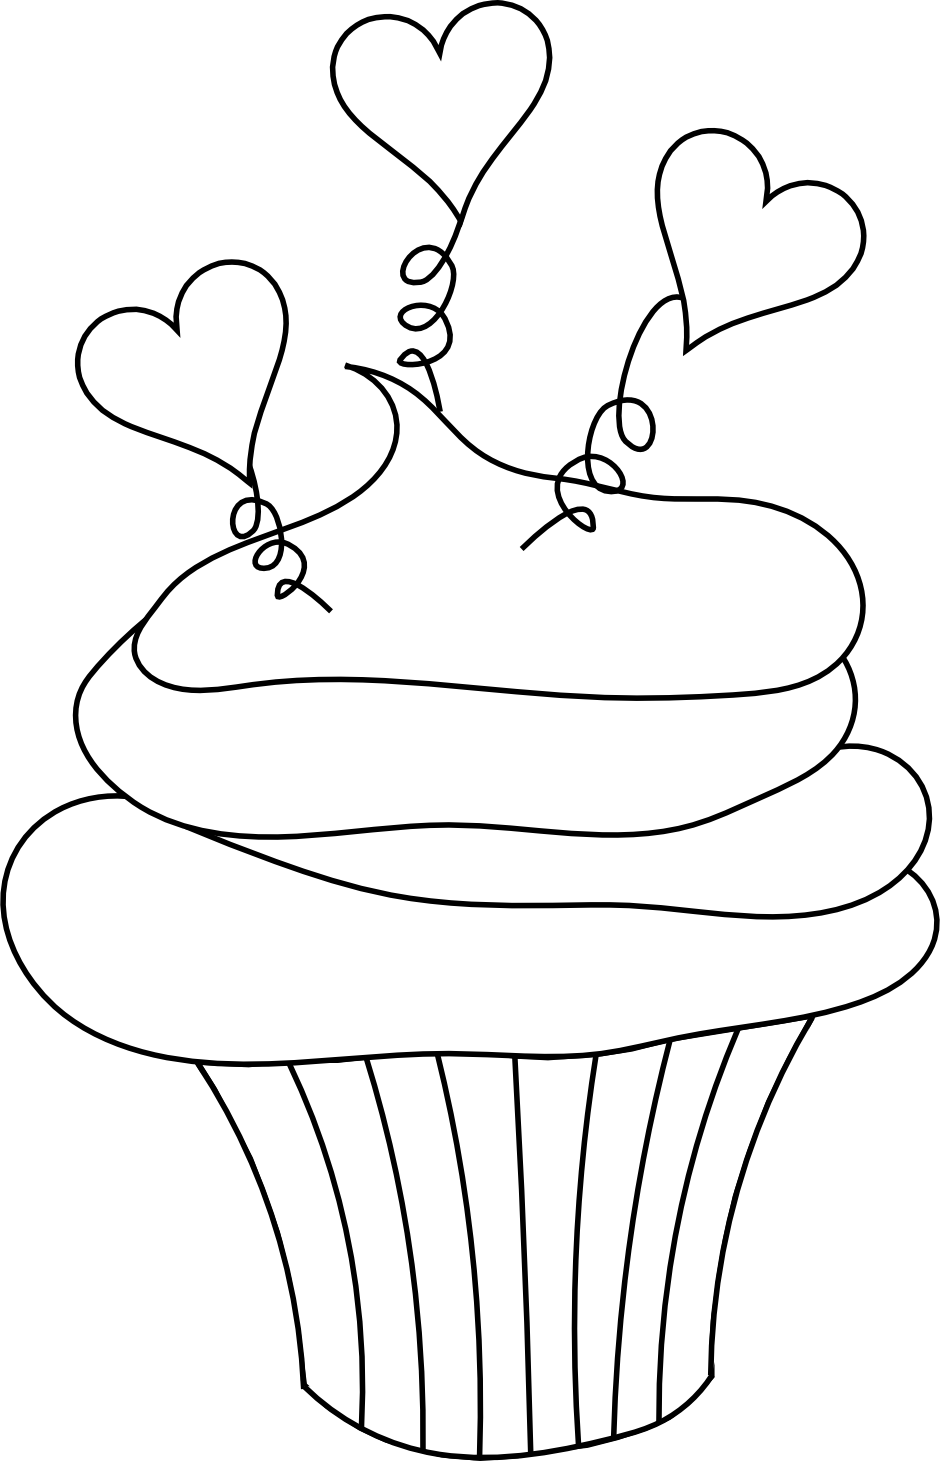 This Cupcake Image With Little Hearts Is Perfect For Valentine S Day Cupcake Coloring Pages Digital Stamps Free Free Coloring Pages